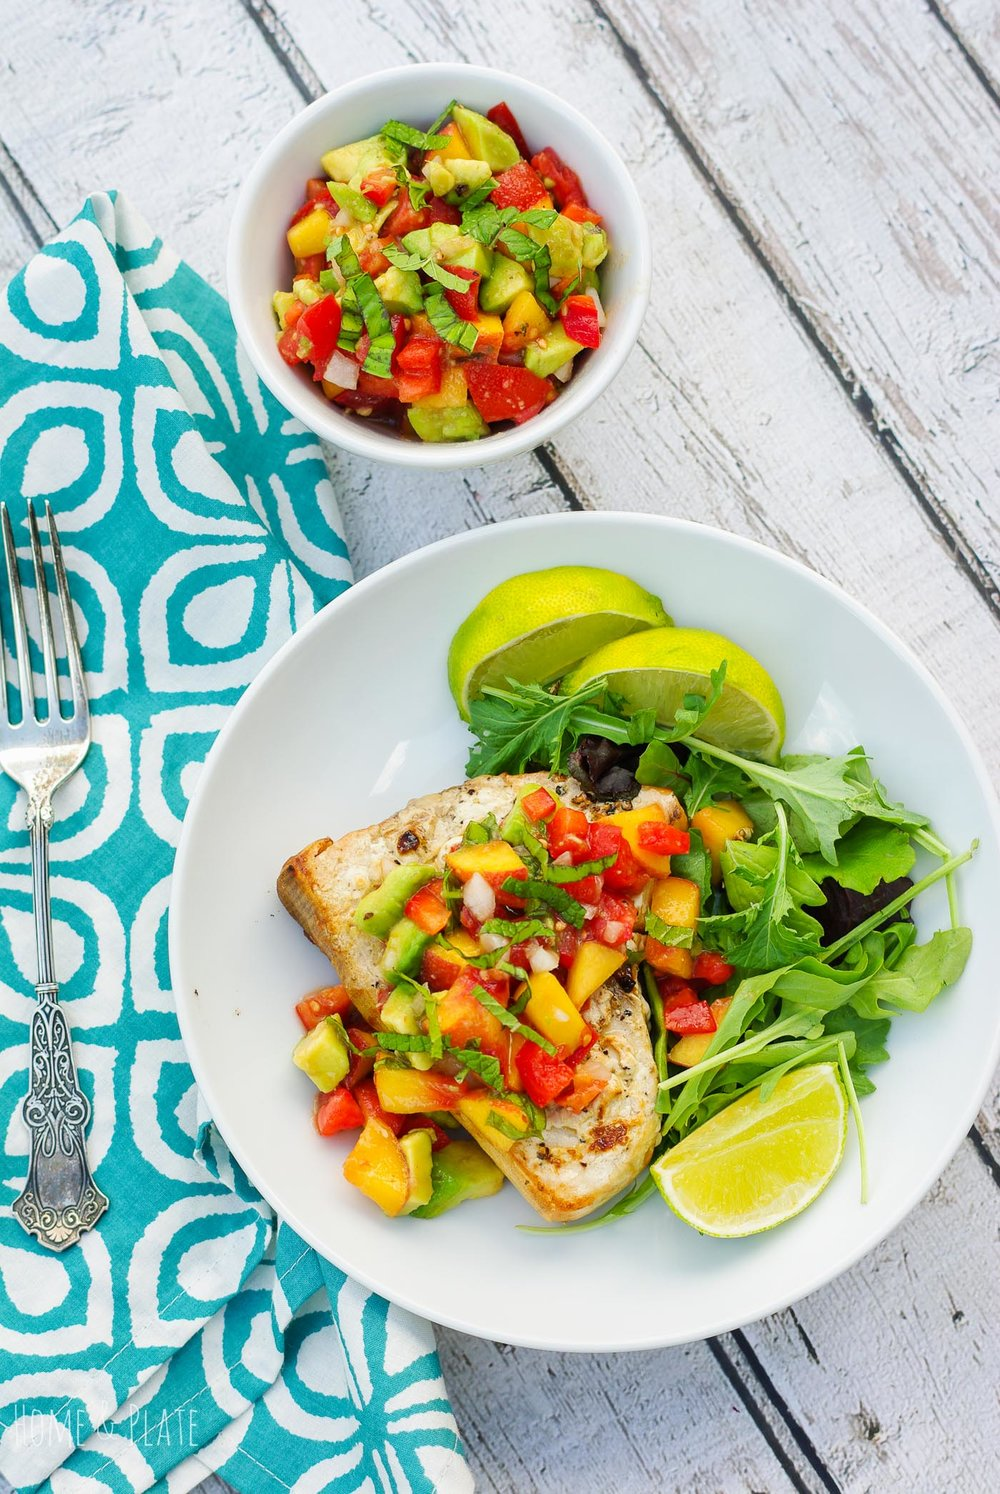 Grilled Swordfish with a Fruit Salsa | www.homeandplate.com | Take advantage of these late summer and fall evenings with a grilled swordfish dinner served with a fresh fruit salsa that's light and delicious.